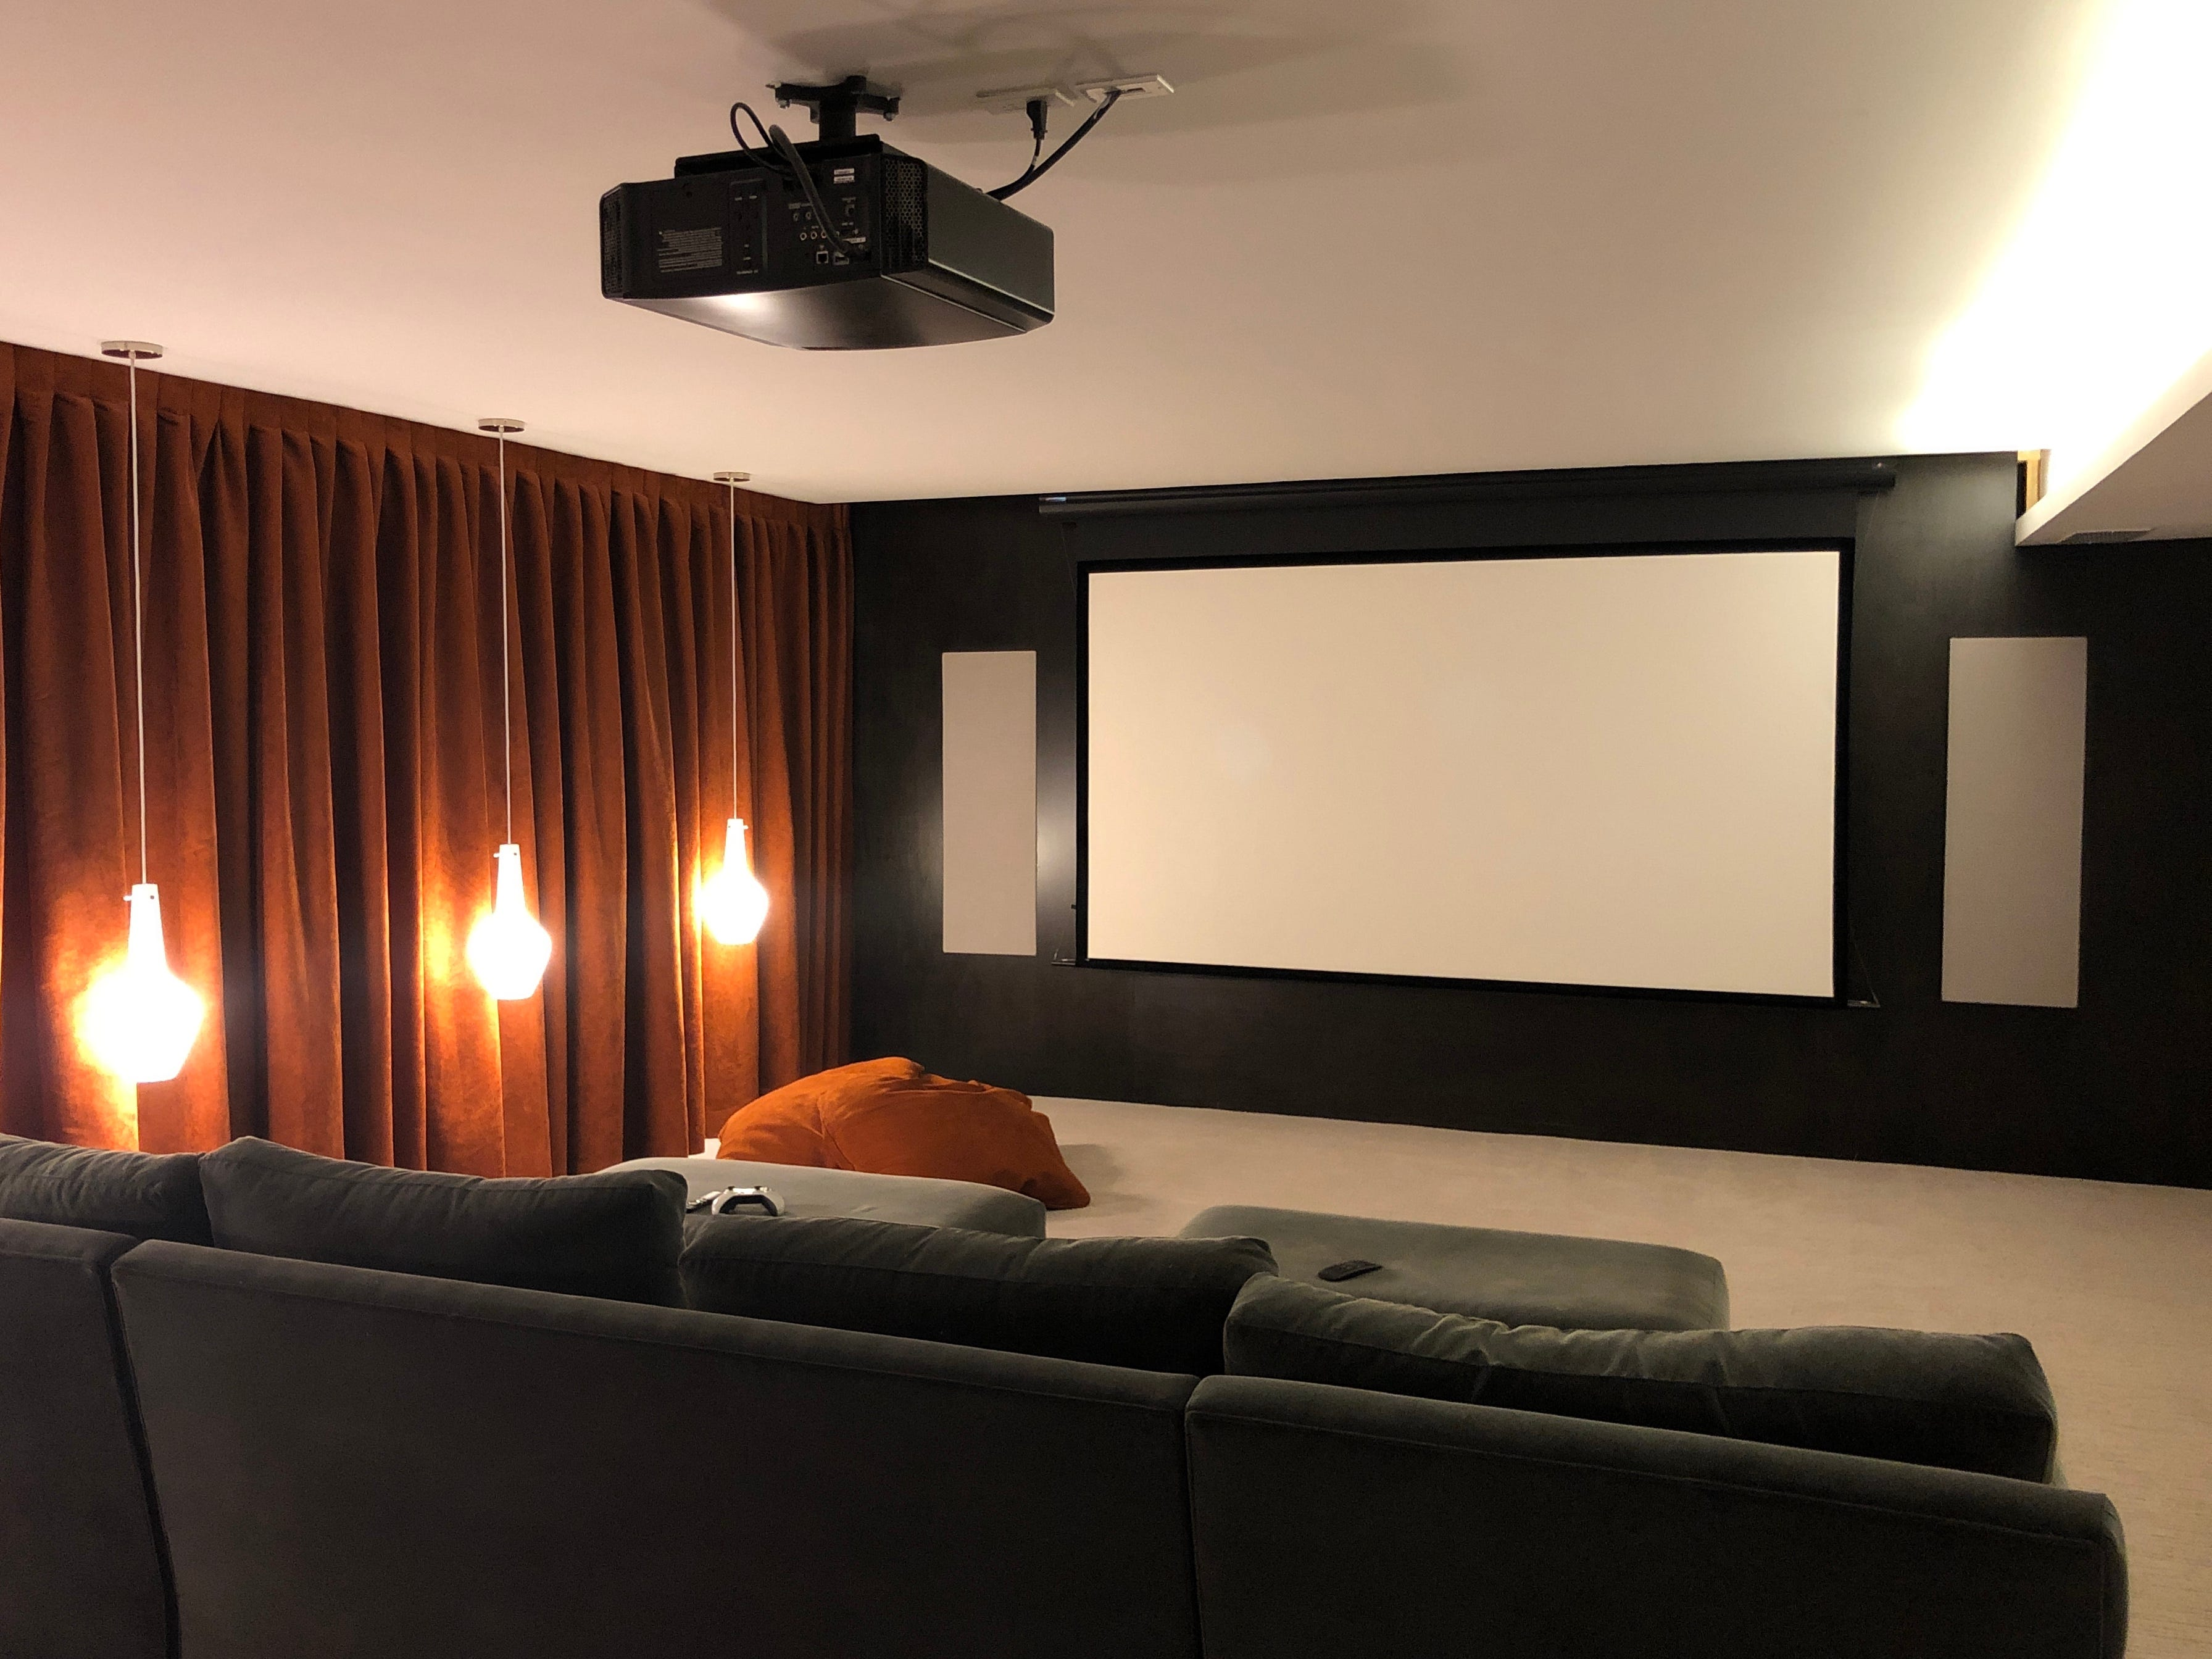 Vierra turned the basement into a movie theater complete with blackout curtains, top-of-the-line sound and video equipment, soundproofing and plushy seating.